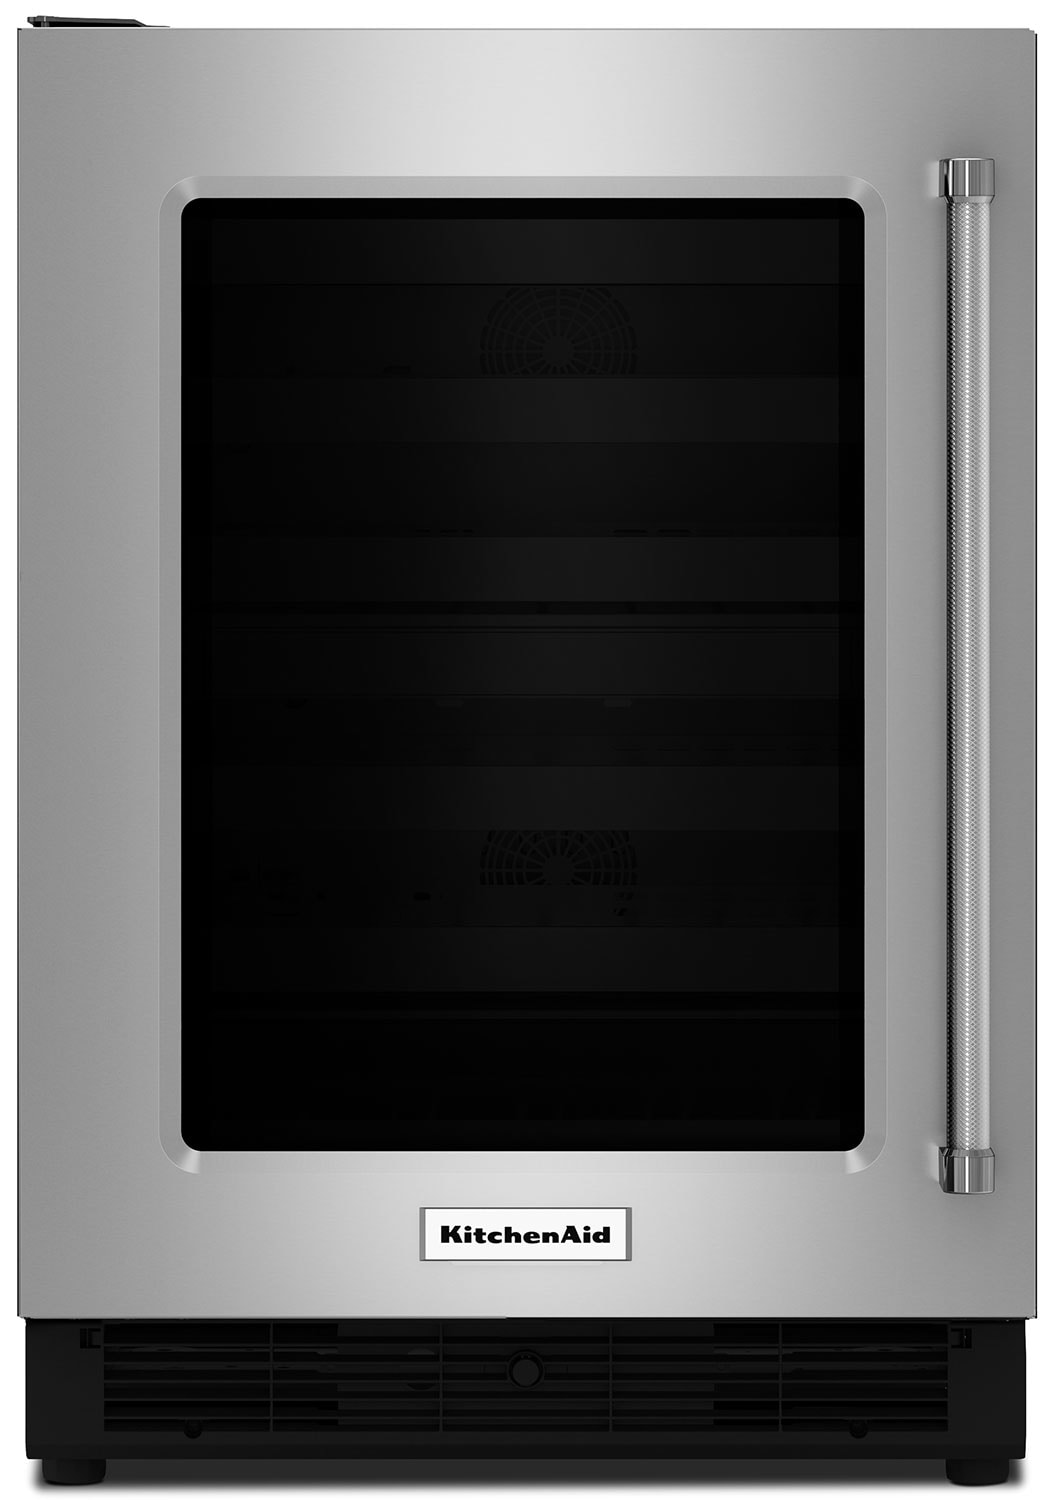 KitchenAid Stainless Steel Undercounter Refrigerator w/ Left Door Swing (4.7 Cu. Ft.) - KURL204ESB